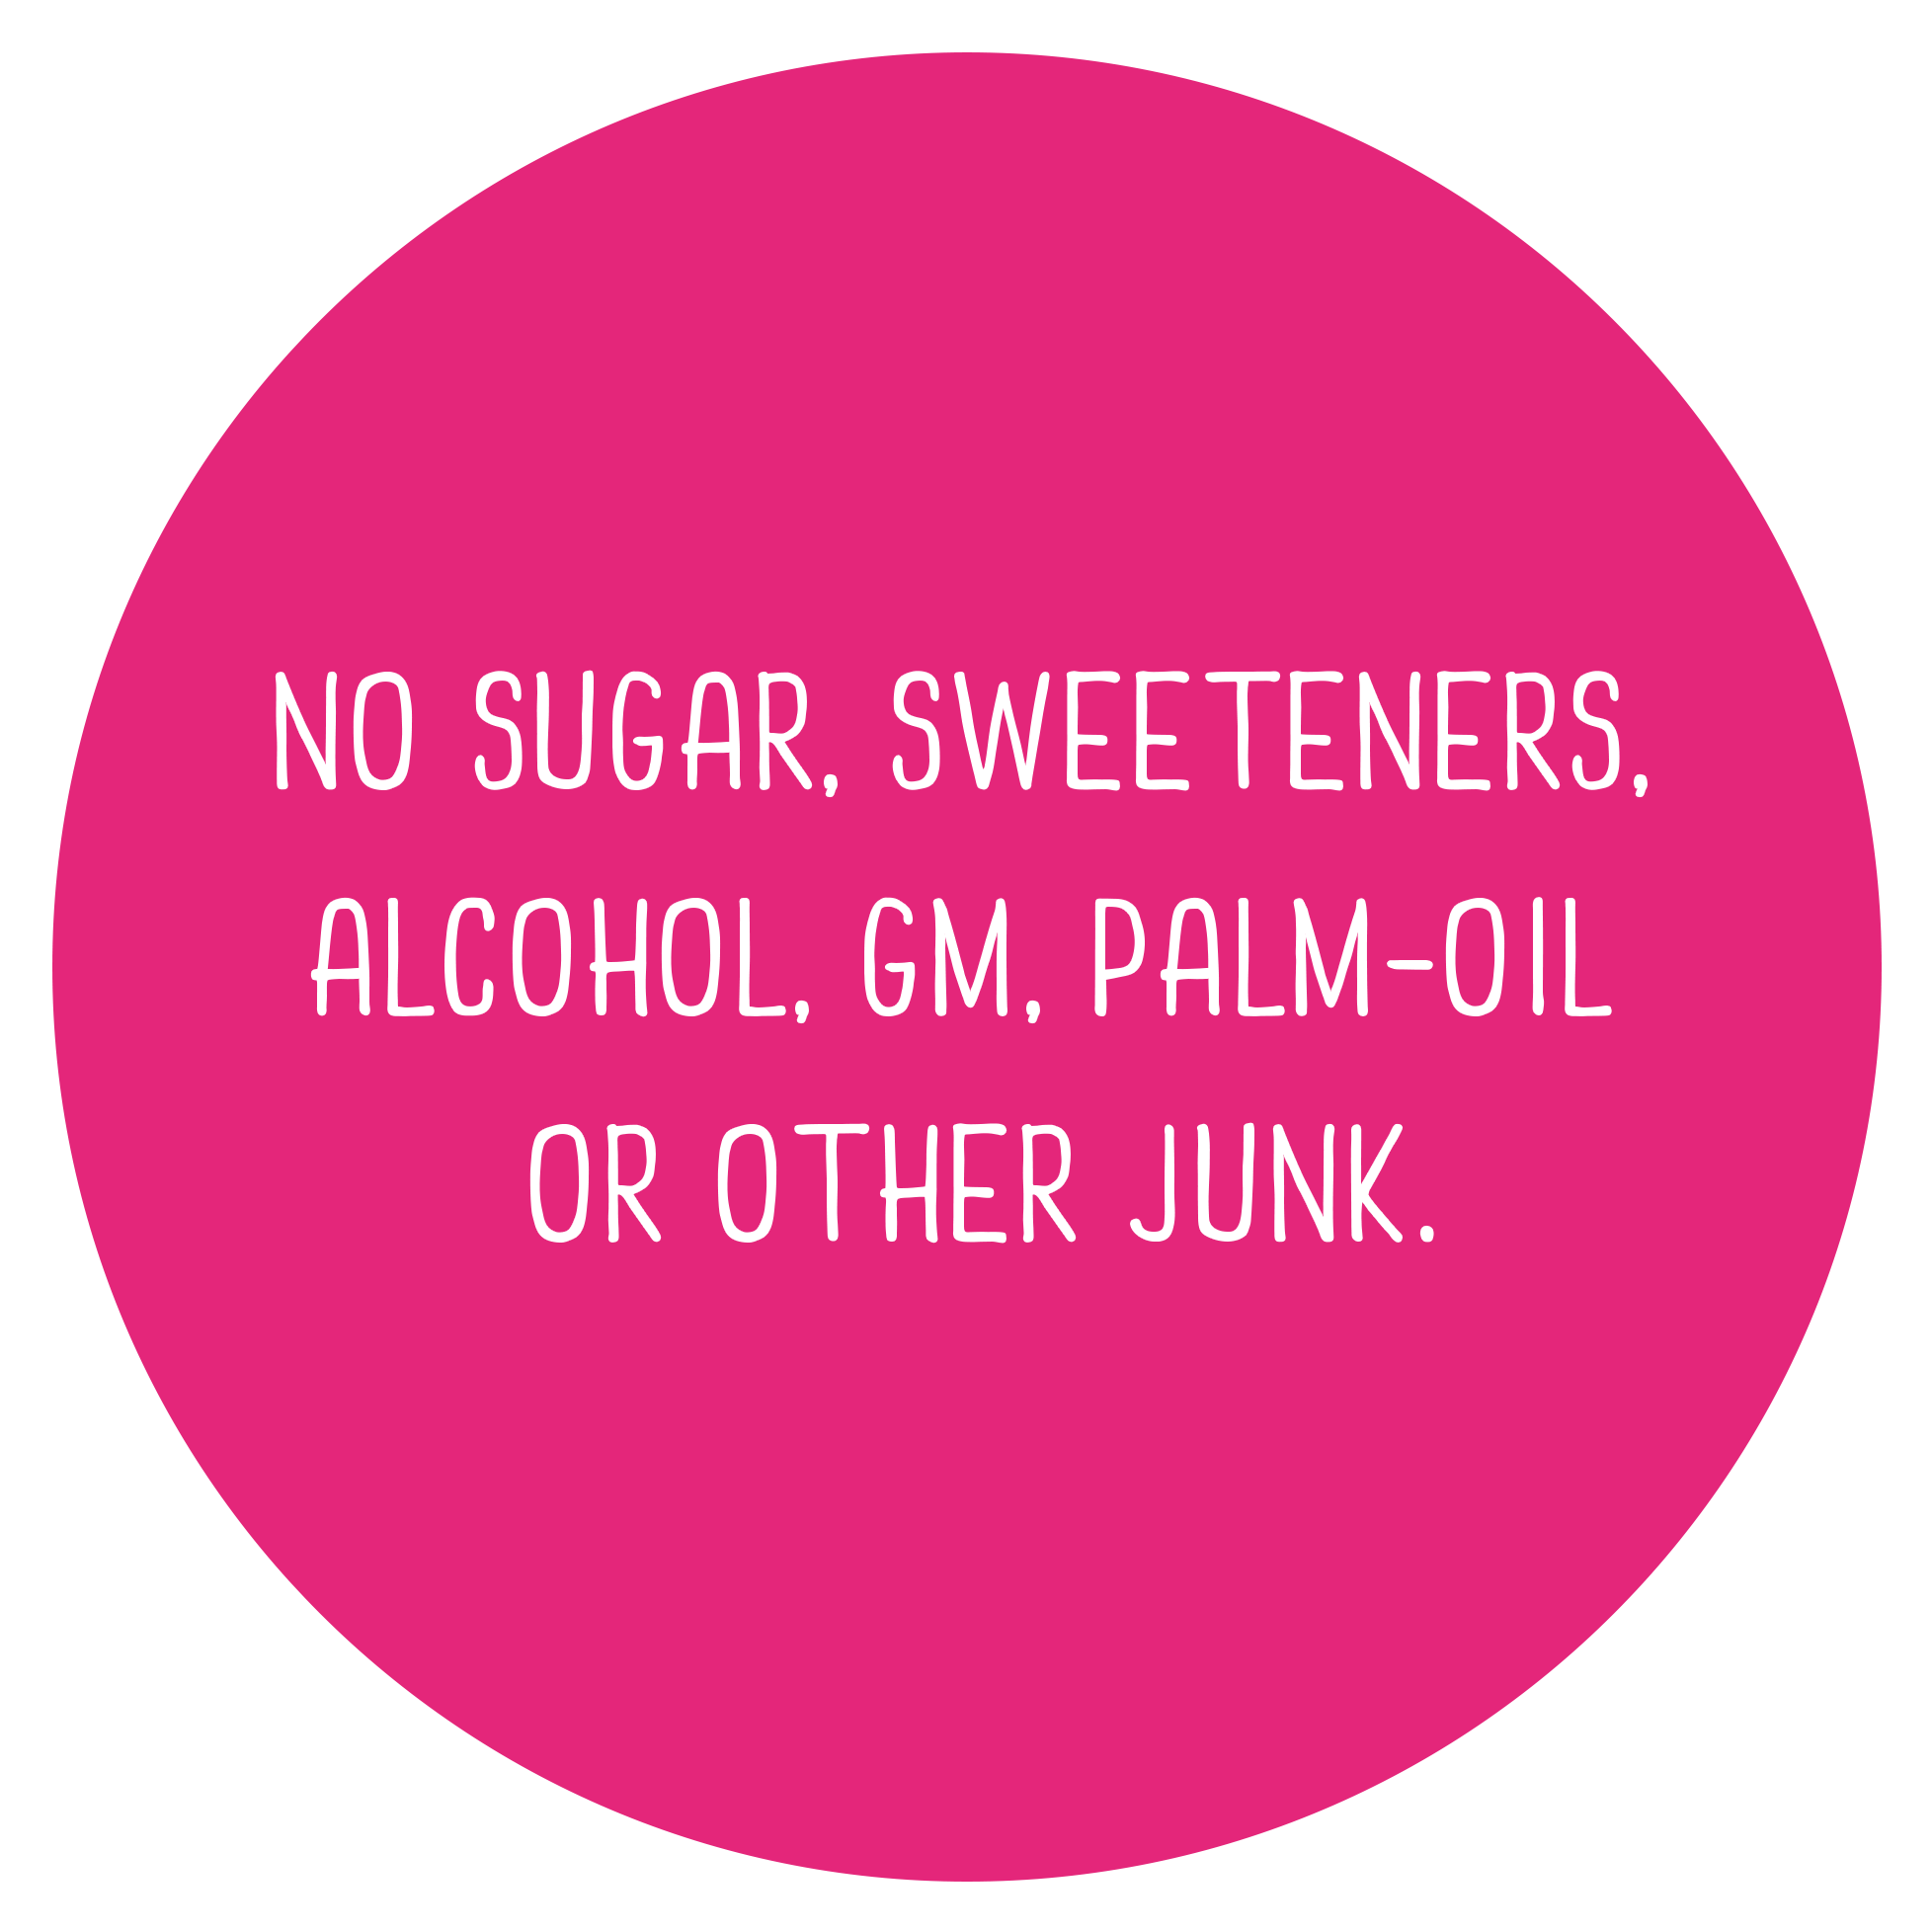 no-sugar-sweeteners-alcohol-gm-palm-oil-or-other-junk.png